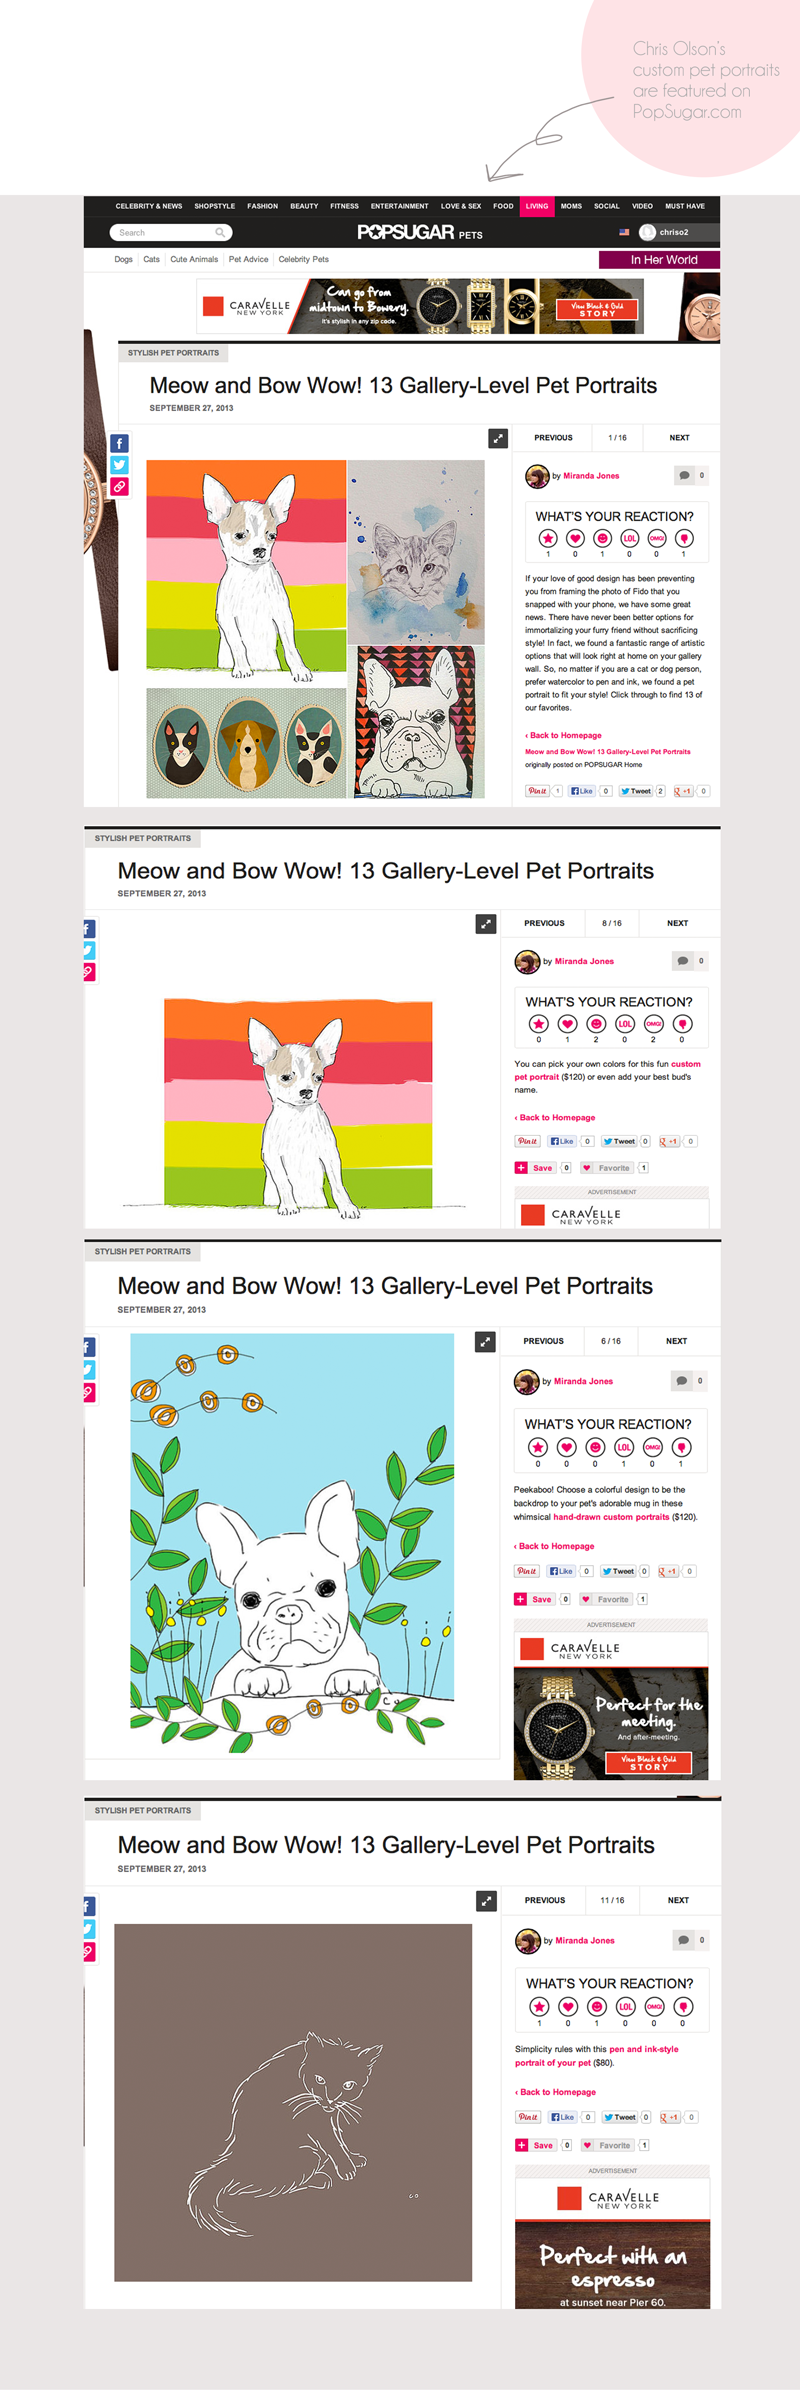 Chris Olson's custom pet portraits featured on PopSugar.com.